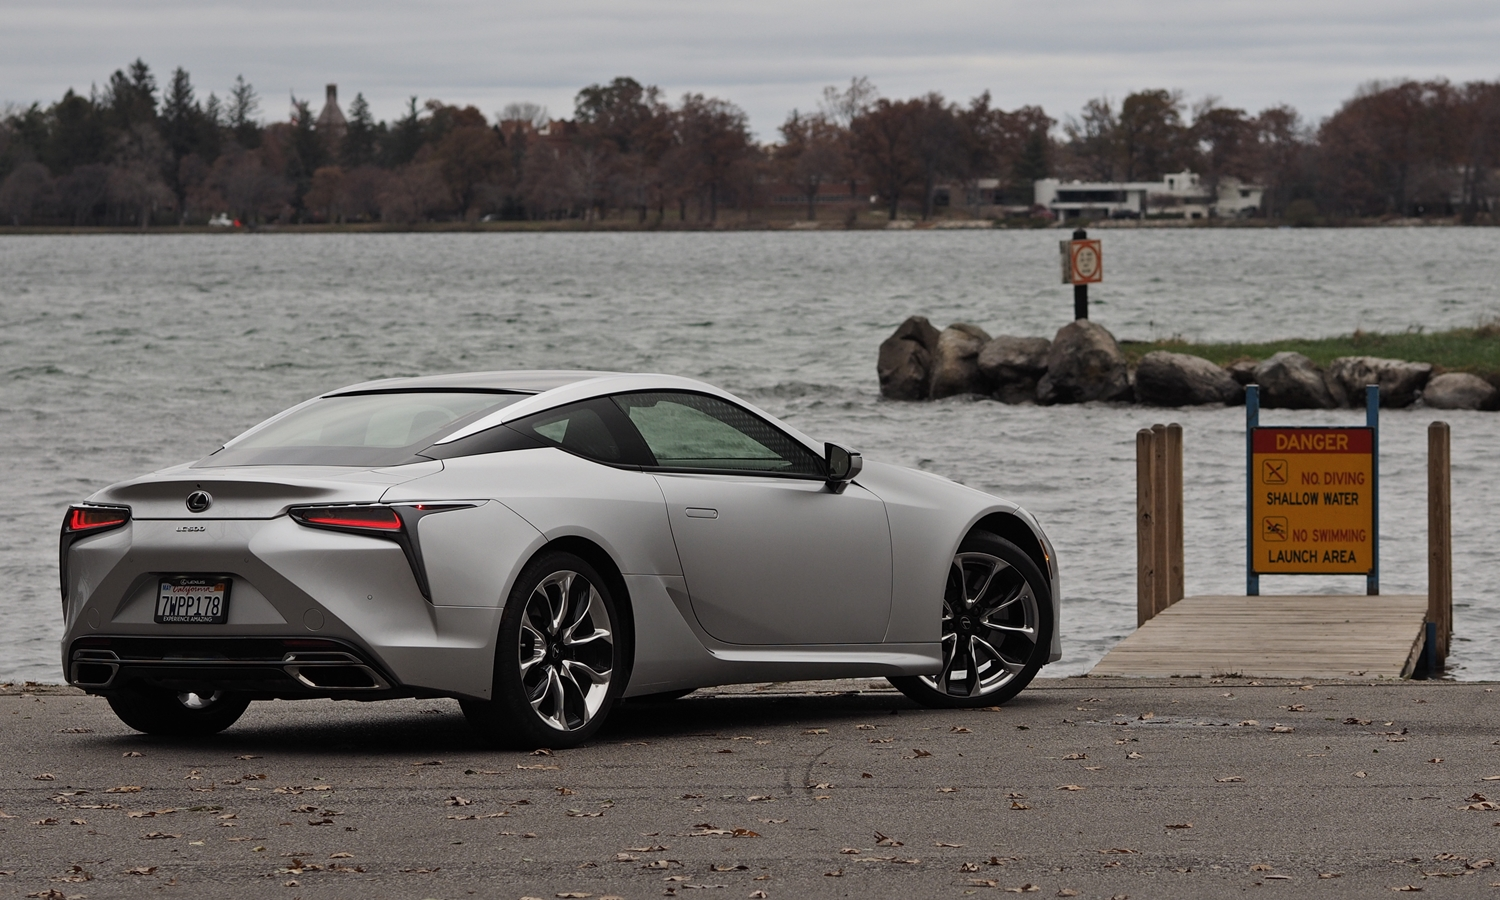 Lexus LC Photos: Lexus LC 500 rear quarter view